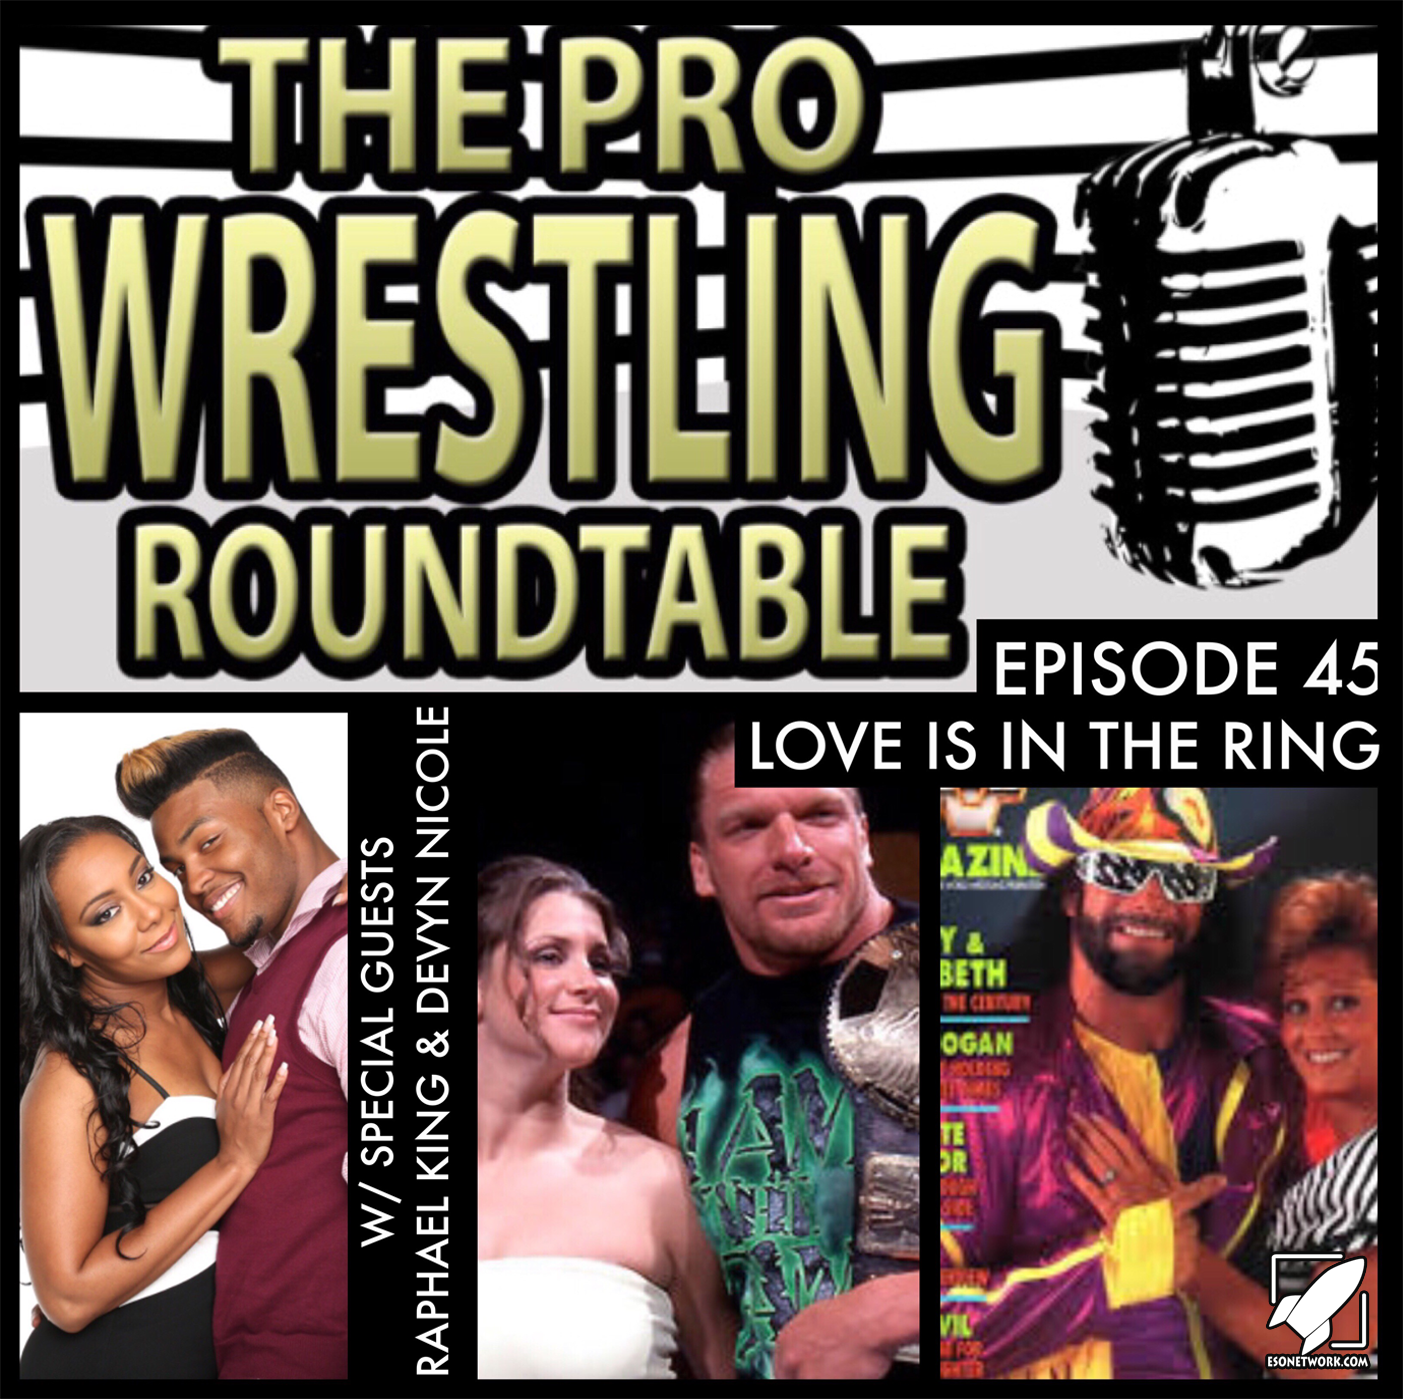 The Pro Wrestling Roundtable Ep 45